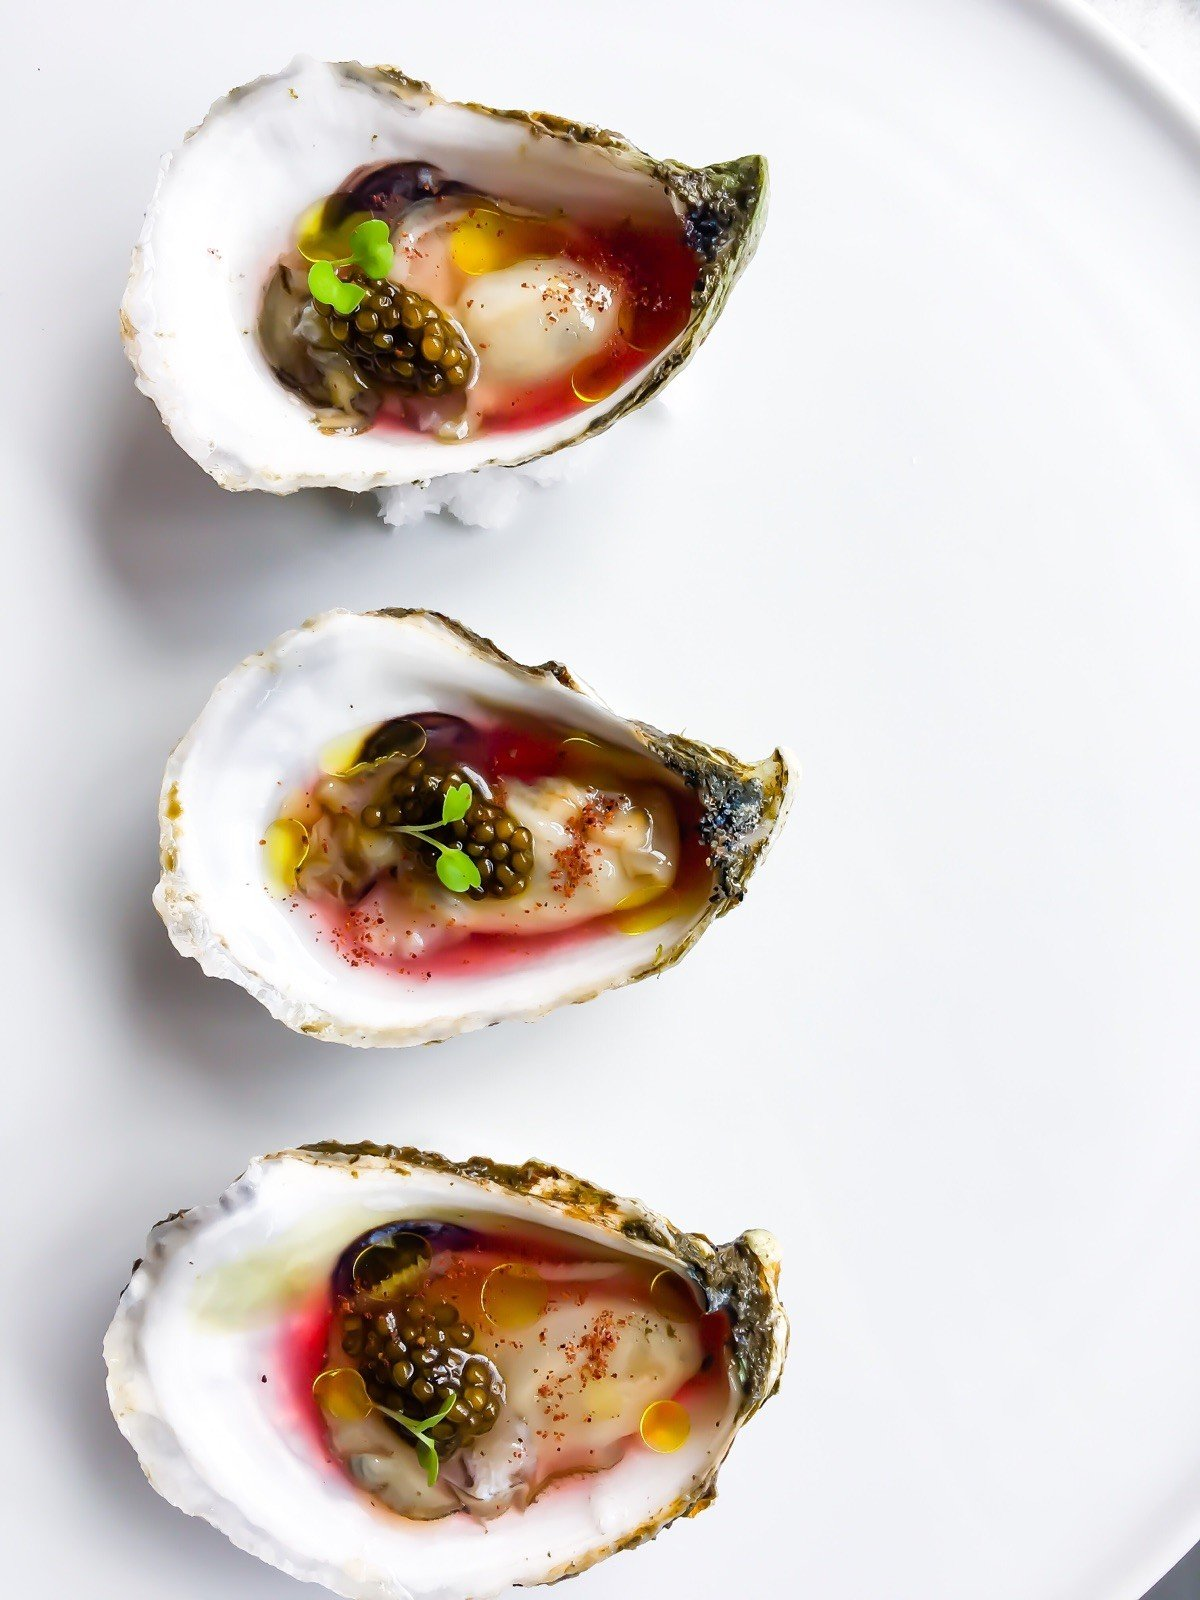 Romance Trip Ideas Weekend Getaways plate food oyster clams oysters mussels and scallops dish Seafood sushi animal source foods oysters rockefeller recipe